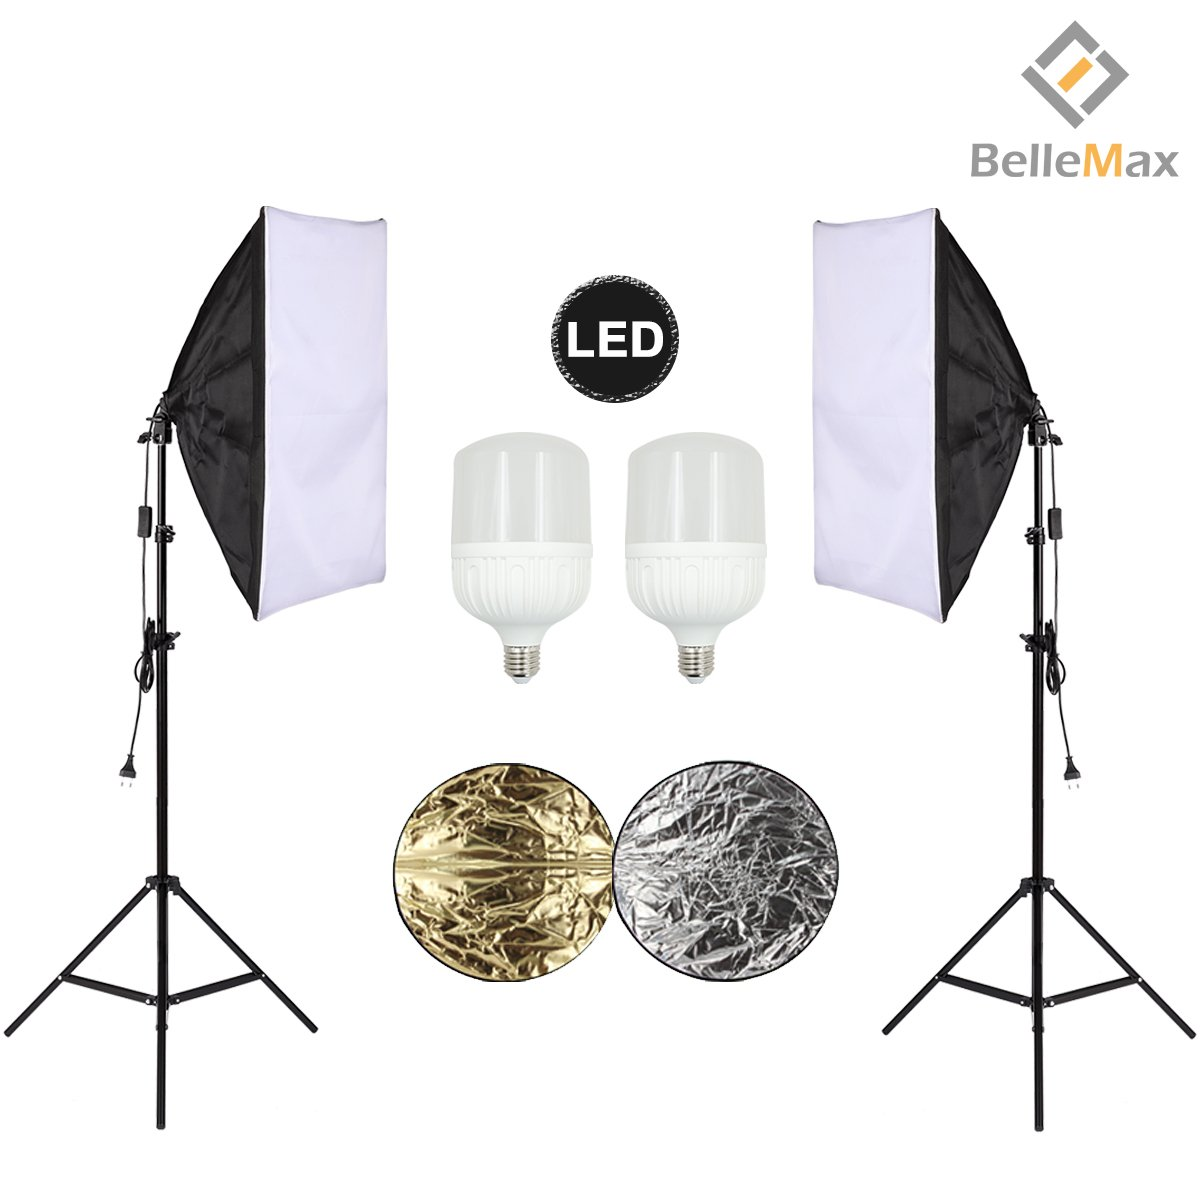 Belle Max (2)20''x28''Photography Softbox Lighting Kit Photo Studio Equipment,Including (2) 28W LED Bulbs,(1)24'' 2-in-1Reflector, Ideal for any vlog, portrait, costume and object photography